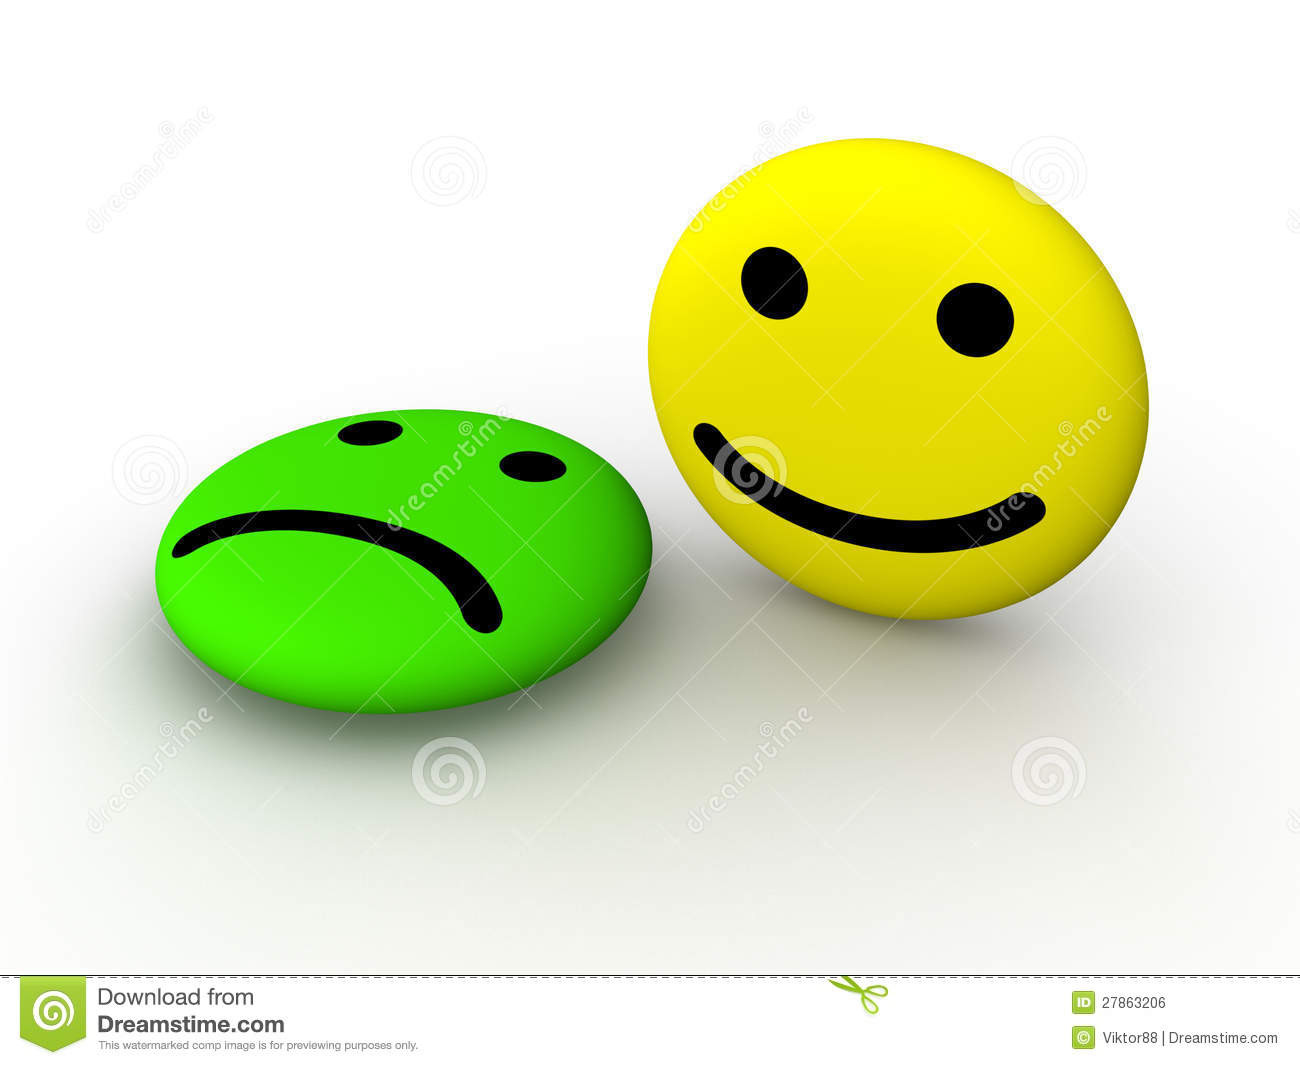 smiley face vase of sad and happy smiley faces stock illustration illustration of glad with regard to sad and happy smiley faces